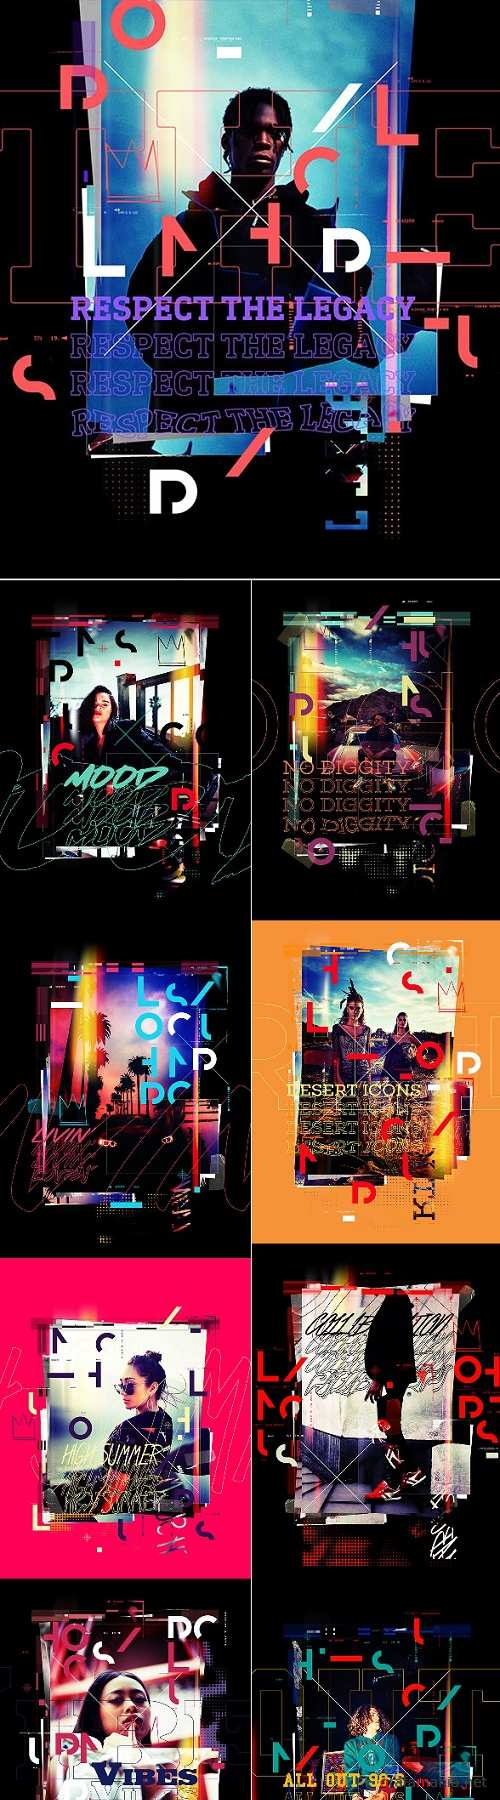 Lomography Typography Poster Photoshop Action - 24518011